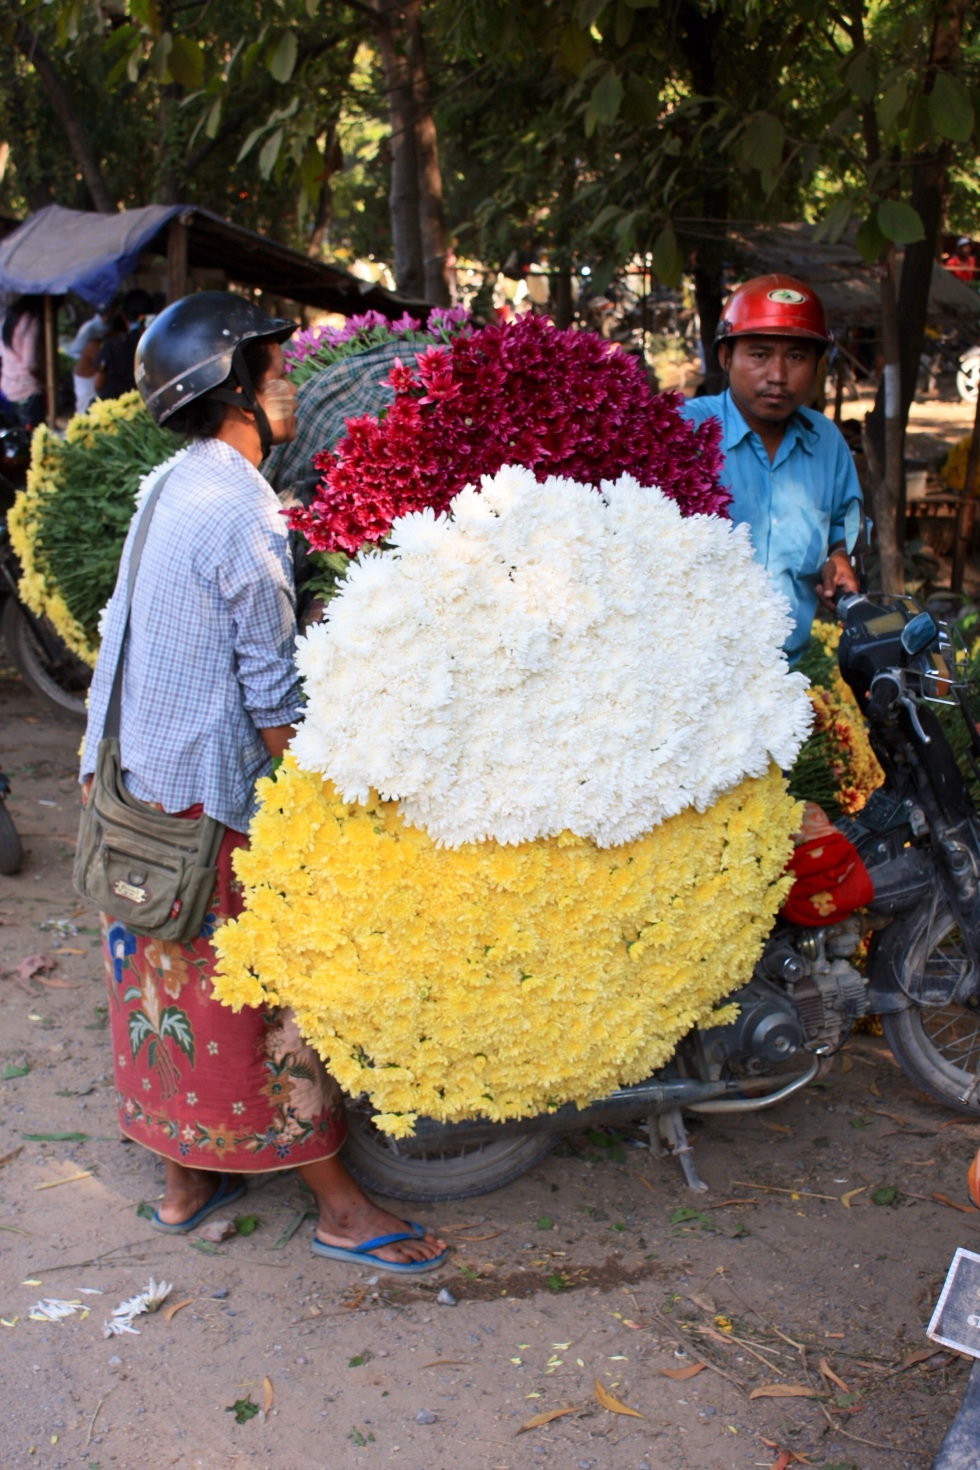 Chrysanthemums, Mandalay Flower Market, October 2012